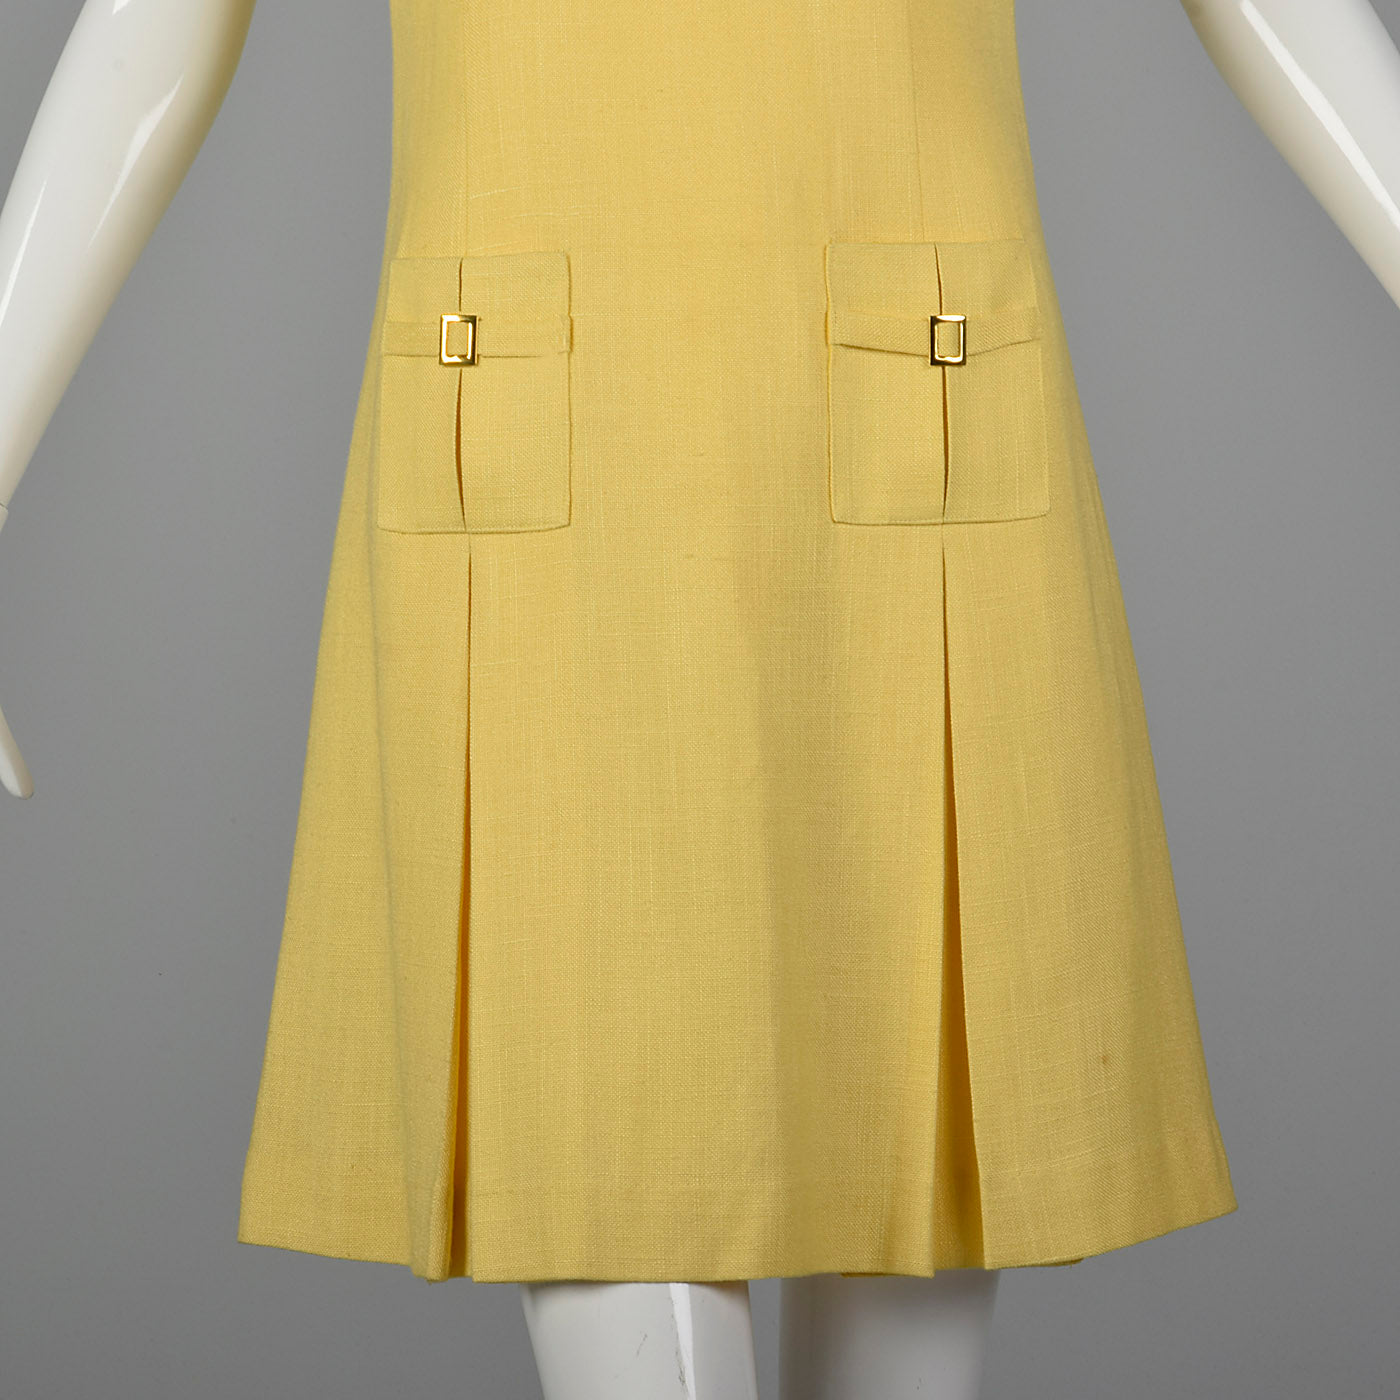 1960s Mod Shift Dress in Yellow